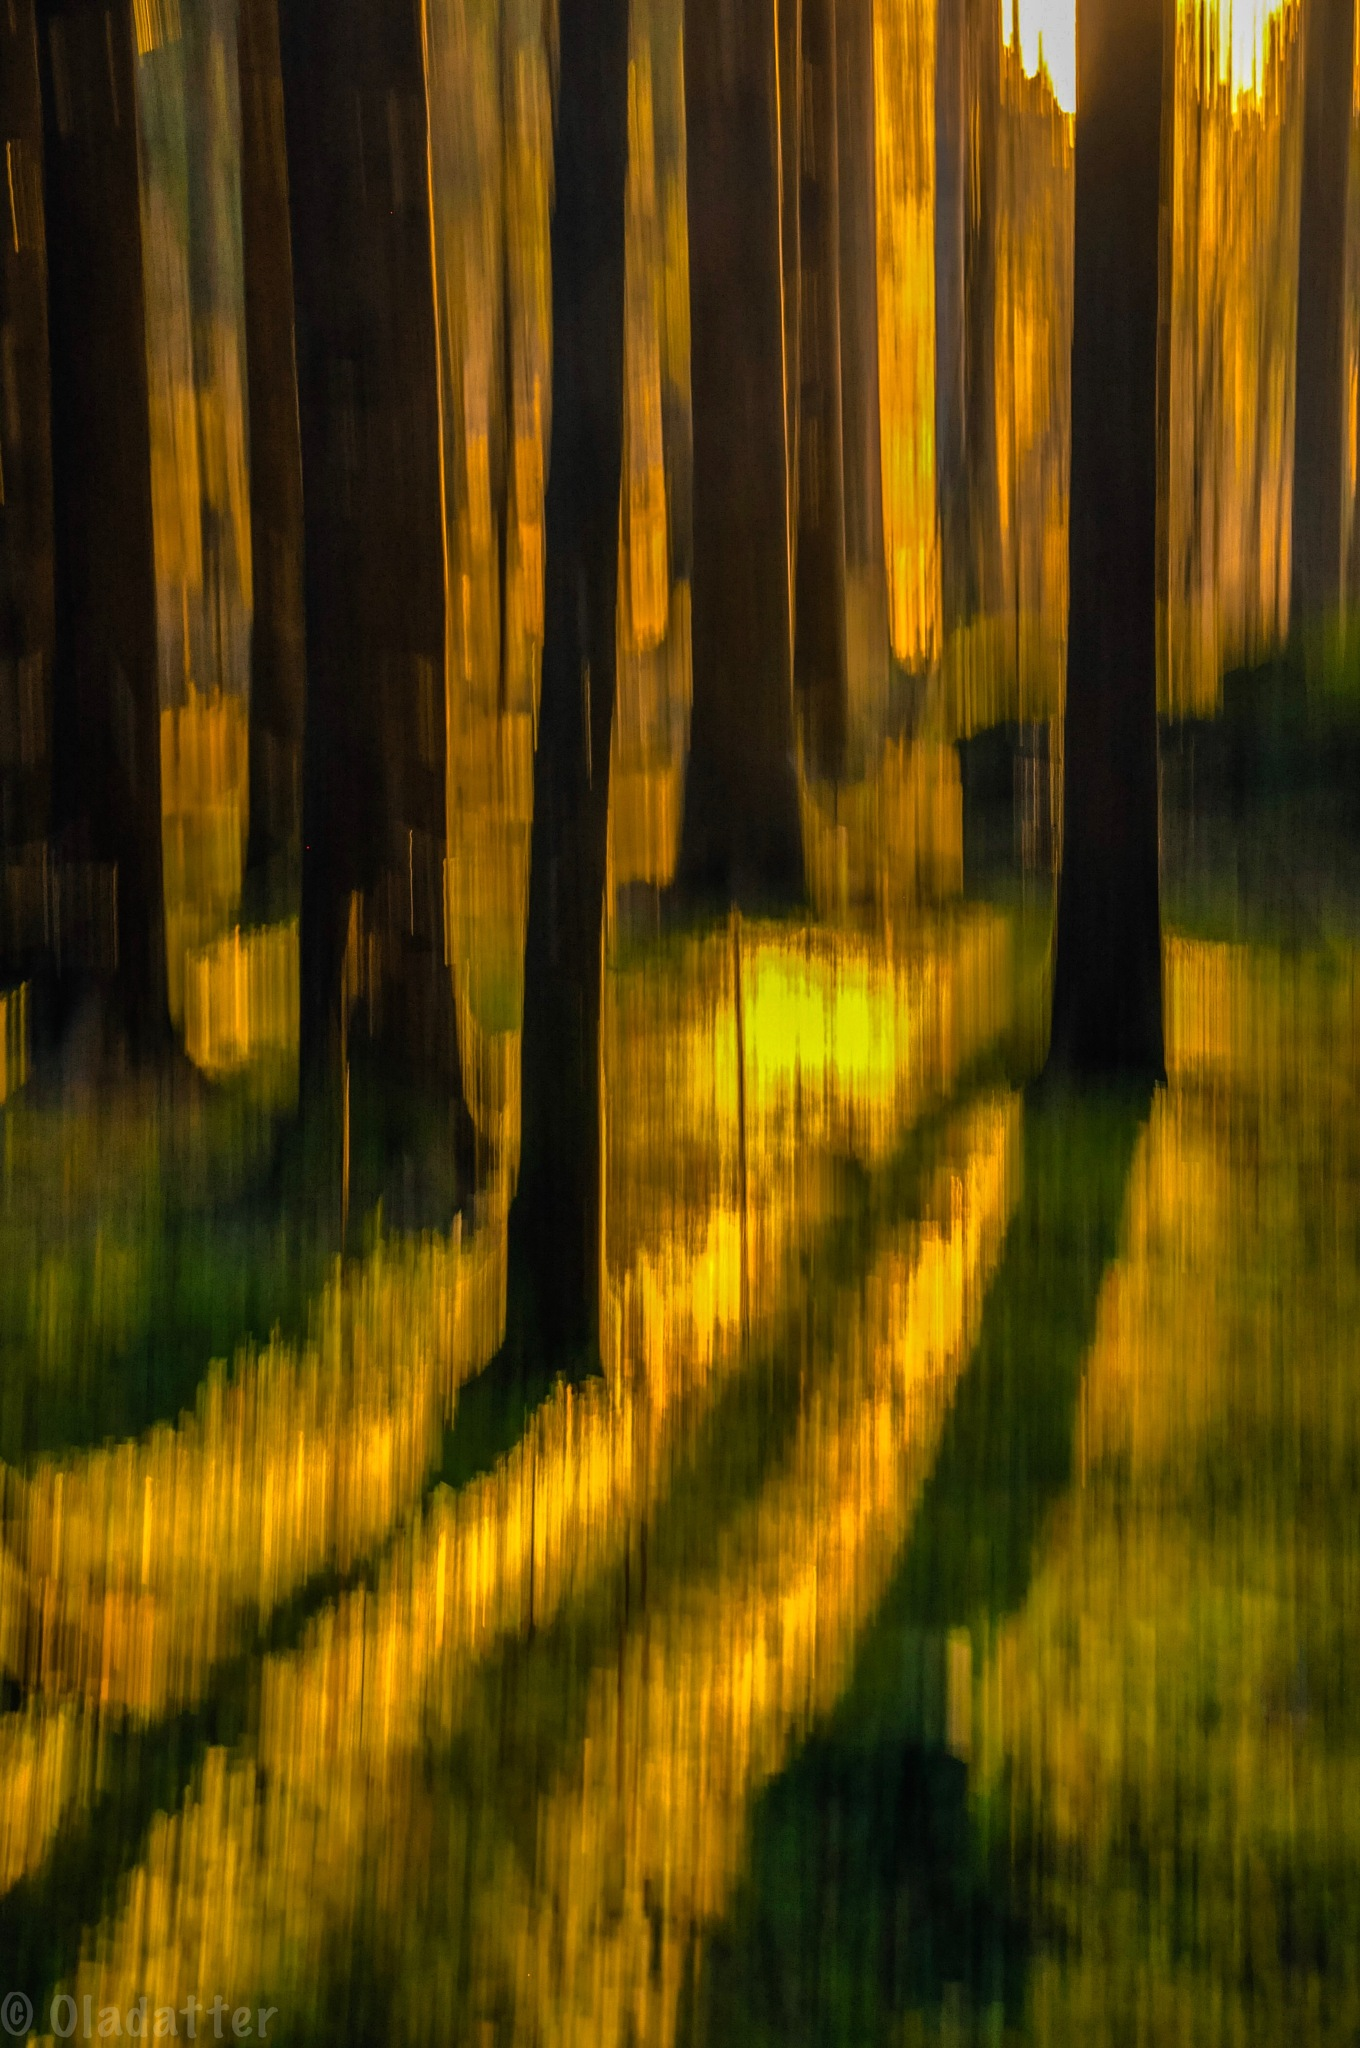 Ray of light in the Autumn forest by Kristin Oladatter